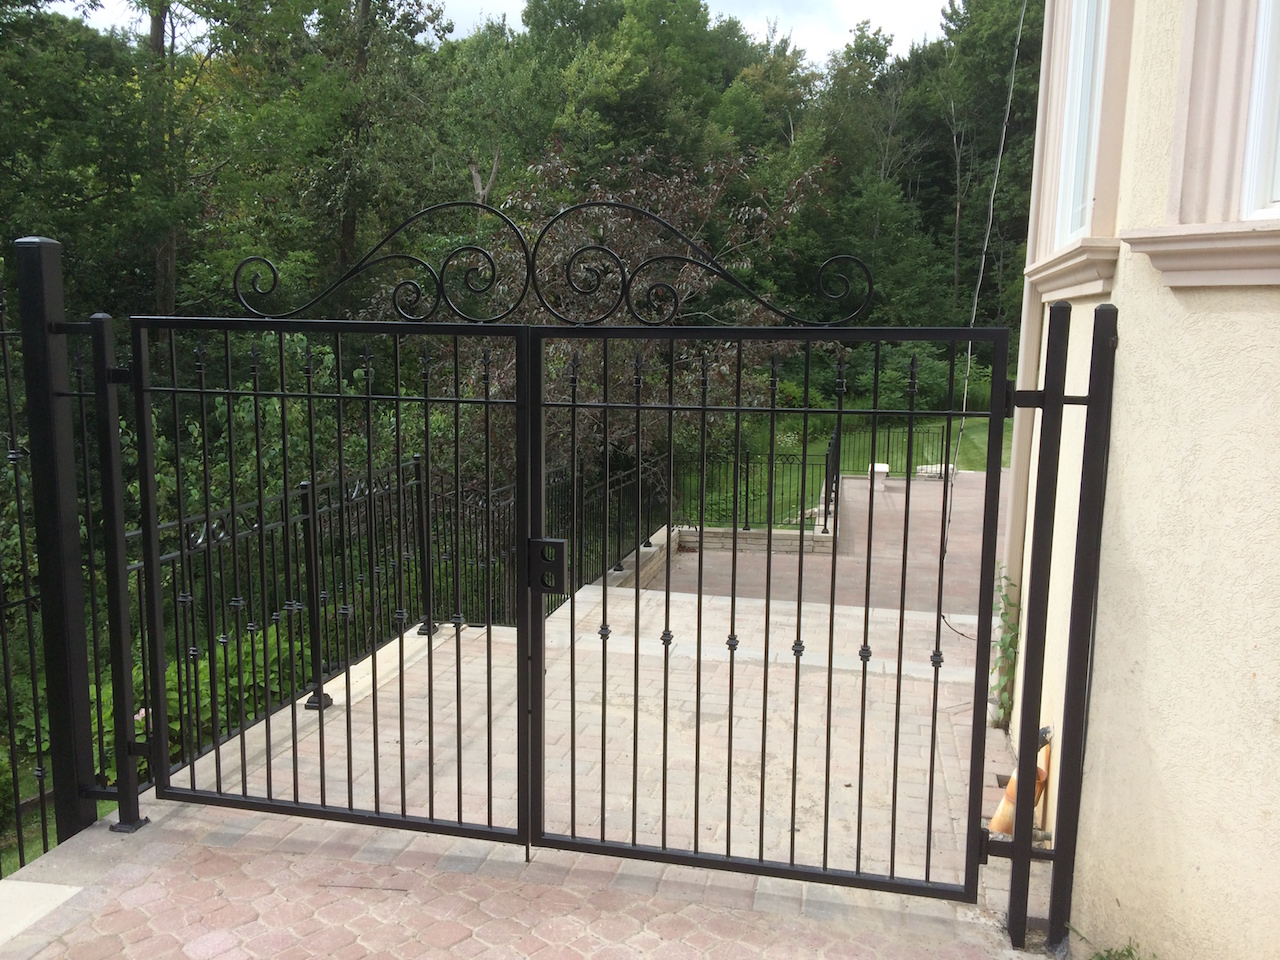 Wrought Iron Gates: Fences – Innovative Metal Works